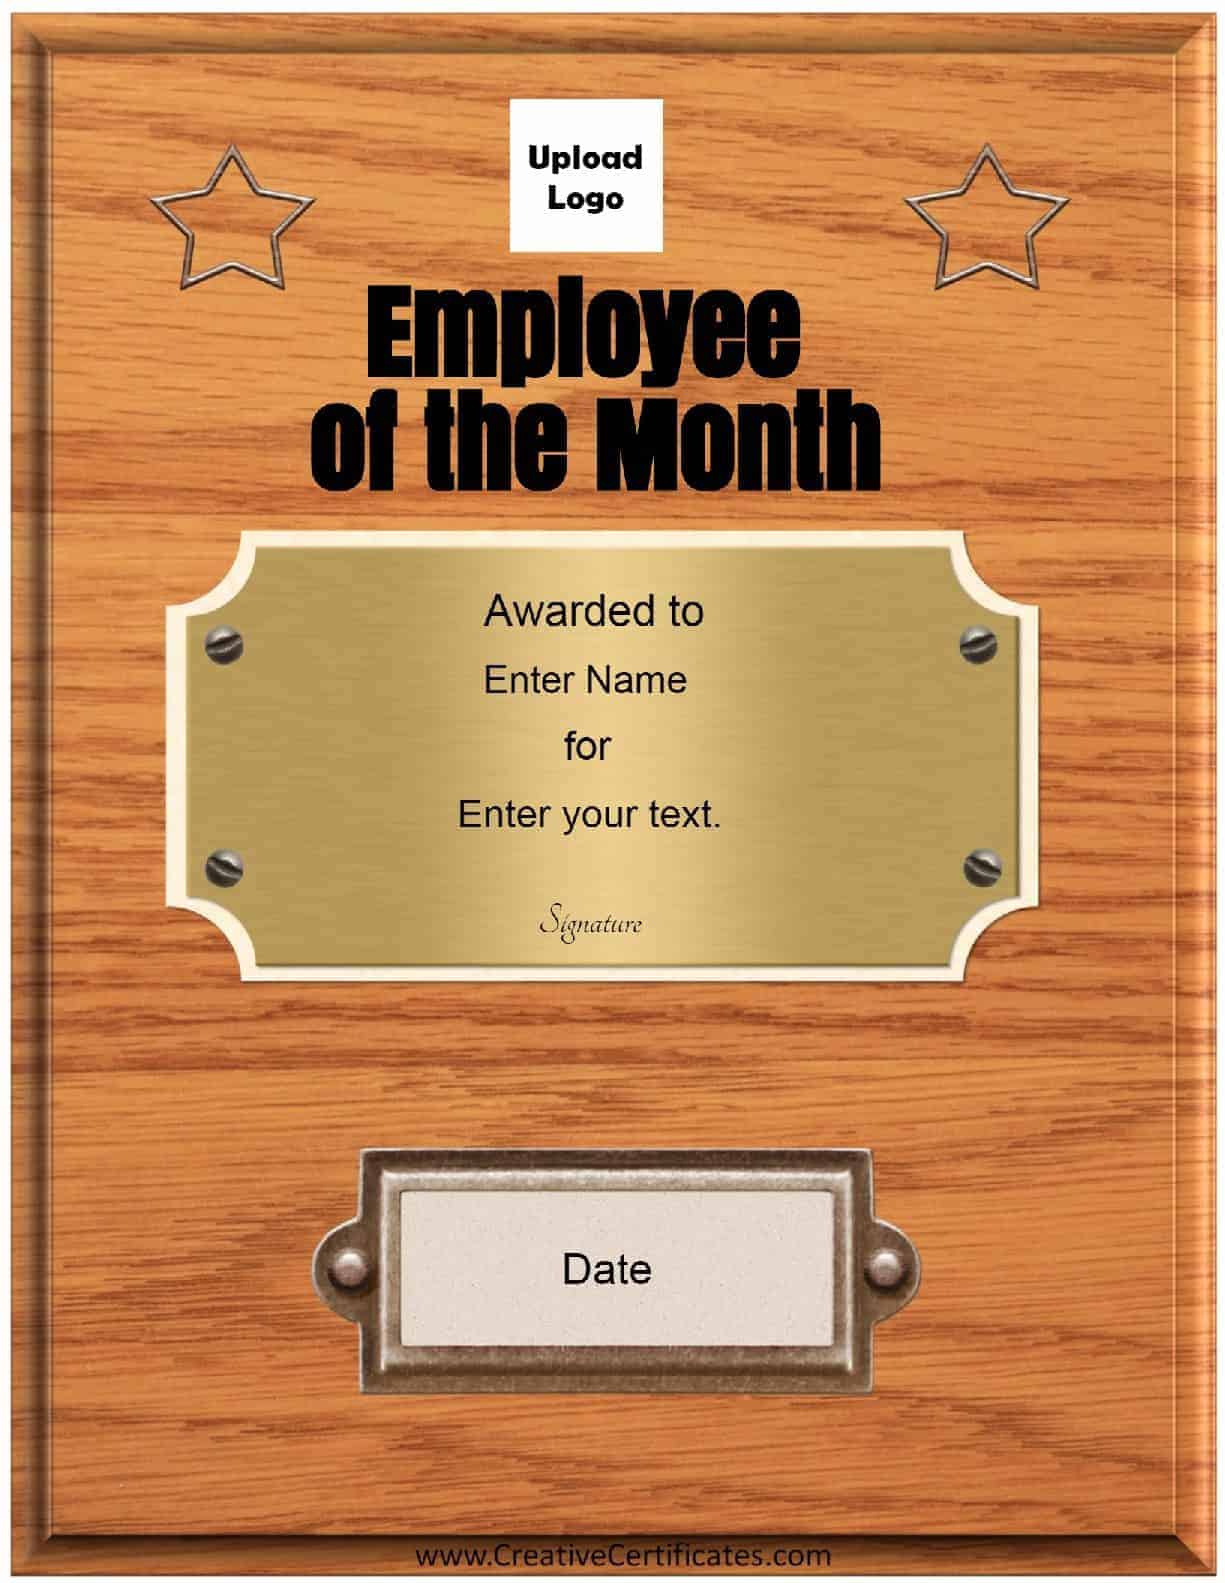 Free custom employee of the month certificate for Employee of the month certificate template free download